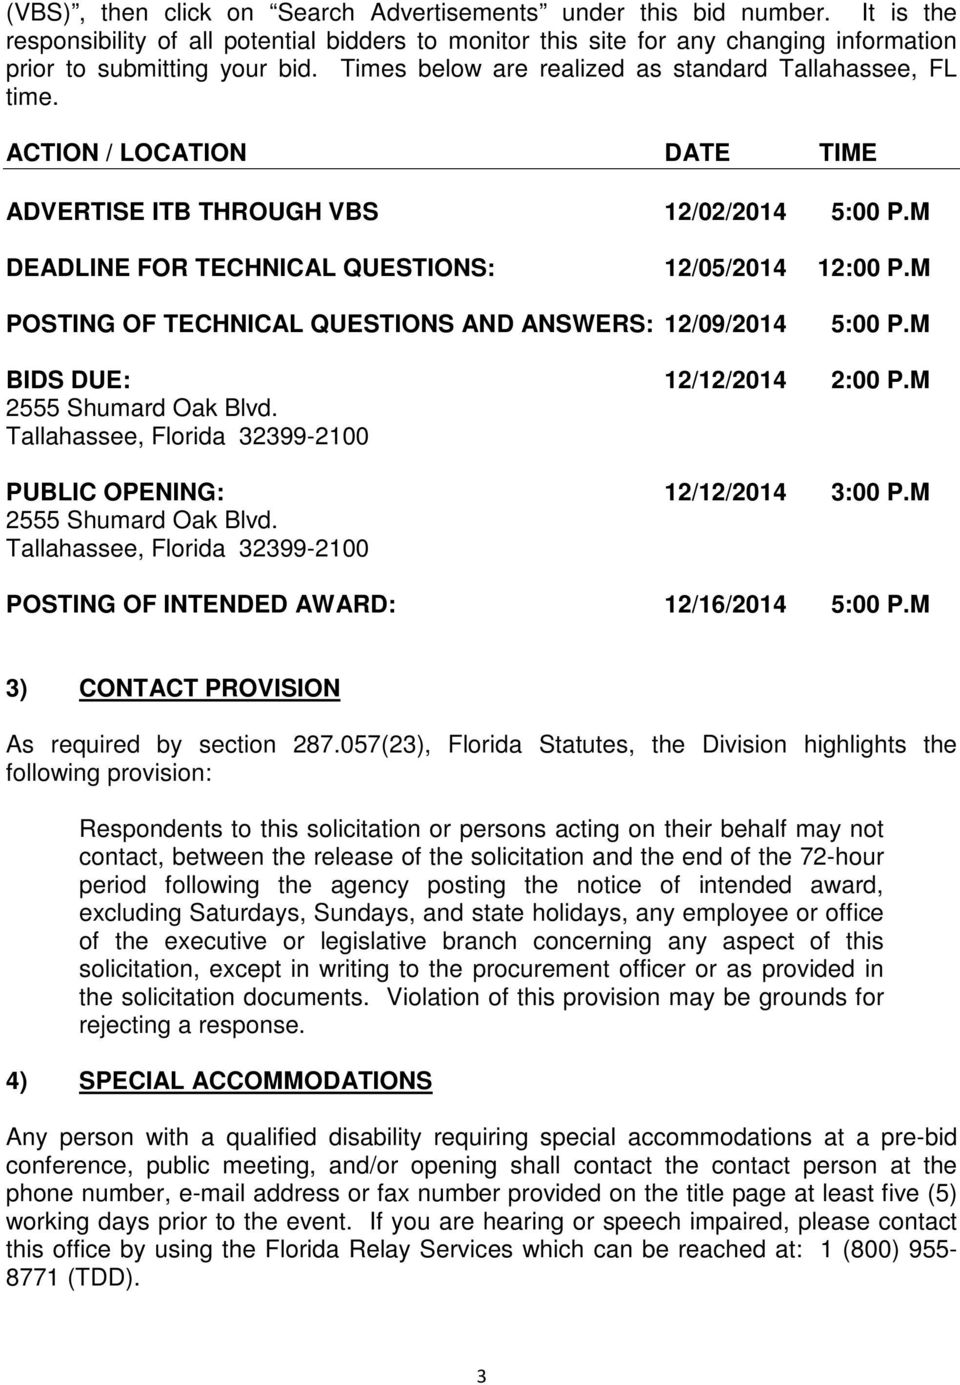 M POSTING OF TECHNICAL QUESTIONS AND ANSWERS: 12/09/2014 5:00 P.M BIDS DUE: 12/12/2014 2:00 P.M 2555 Shumard Oak Blvd. Tallahassee, Florida 32399-2100 PUBLIC OPENING: 12/12/2014 3:00 P.